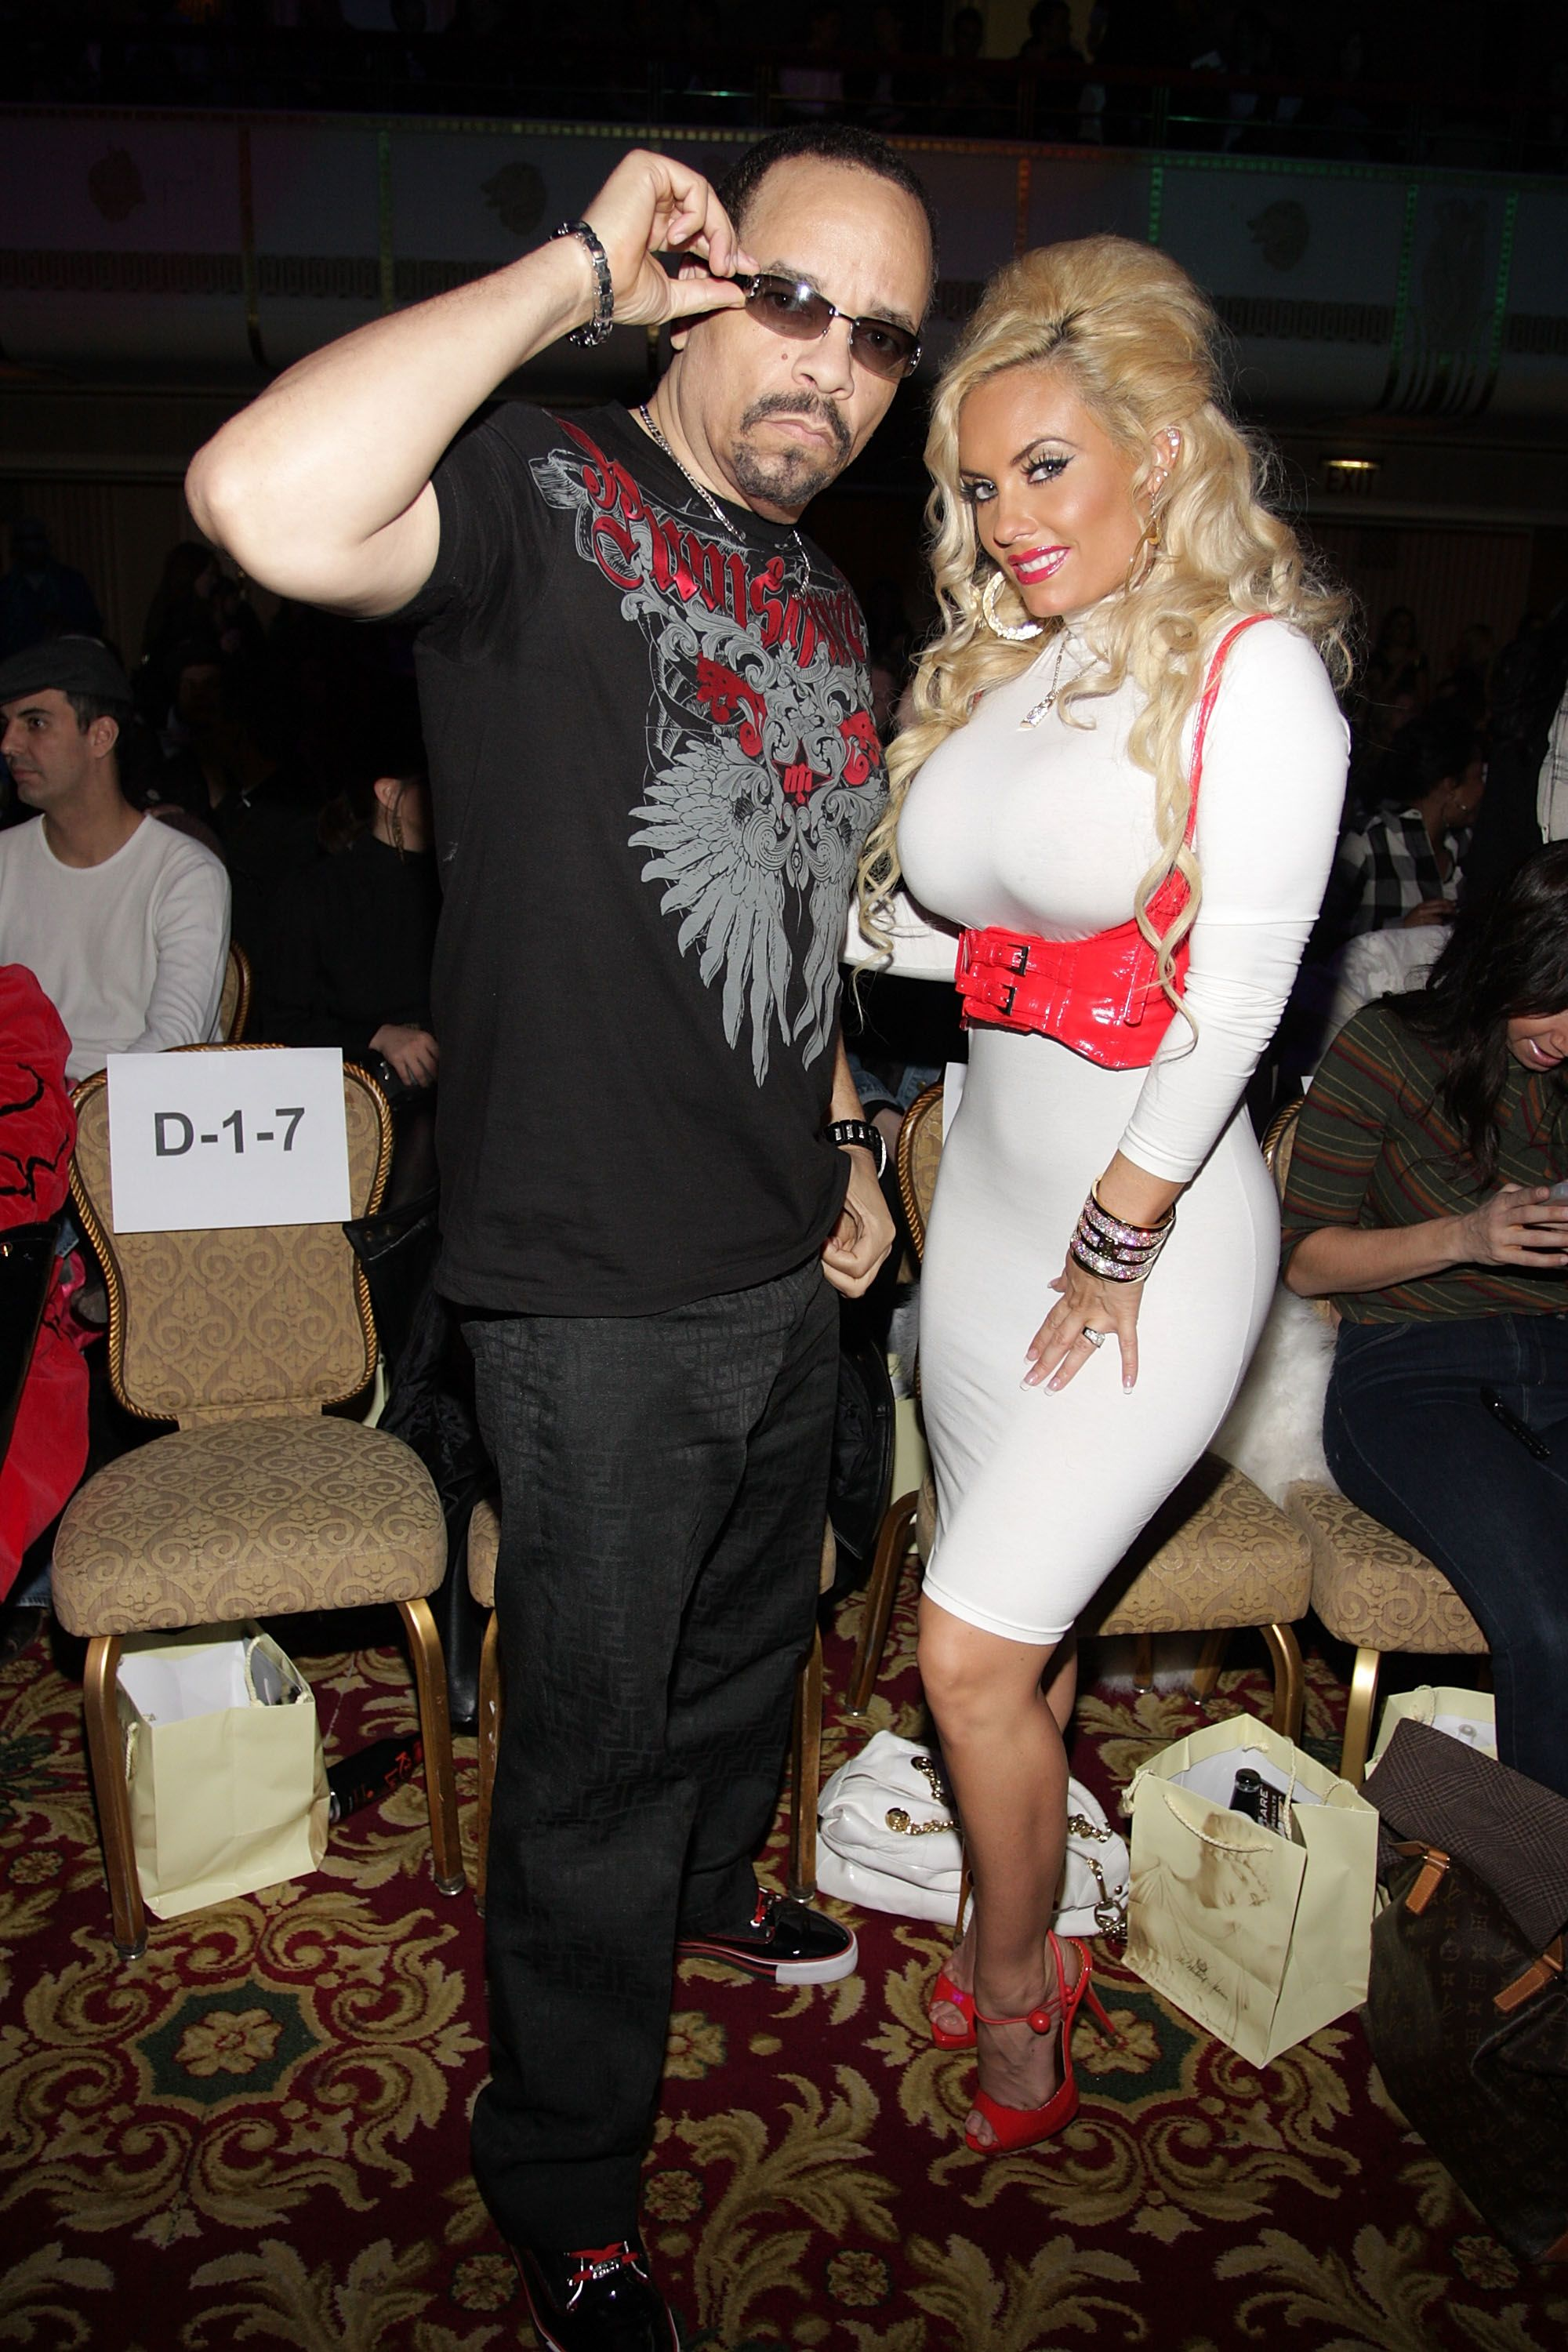 Ice-T and CoCo during the Richie Rich Fall 2009 fashion show at the Mercedes-Benz Fashion Week at Waldorf Astoria on February 18, 2009 in New York City. | Source: Getty Images